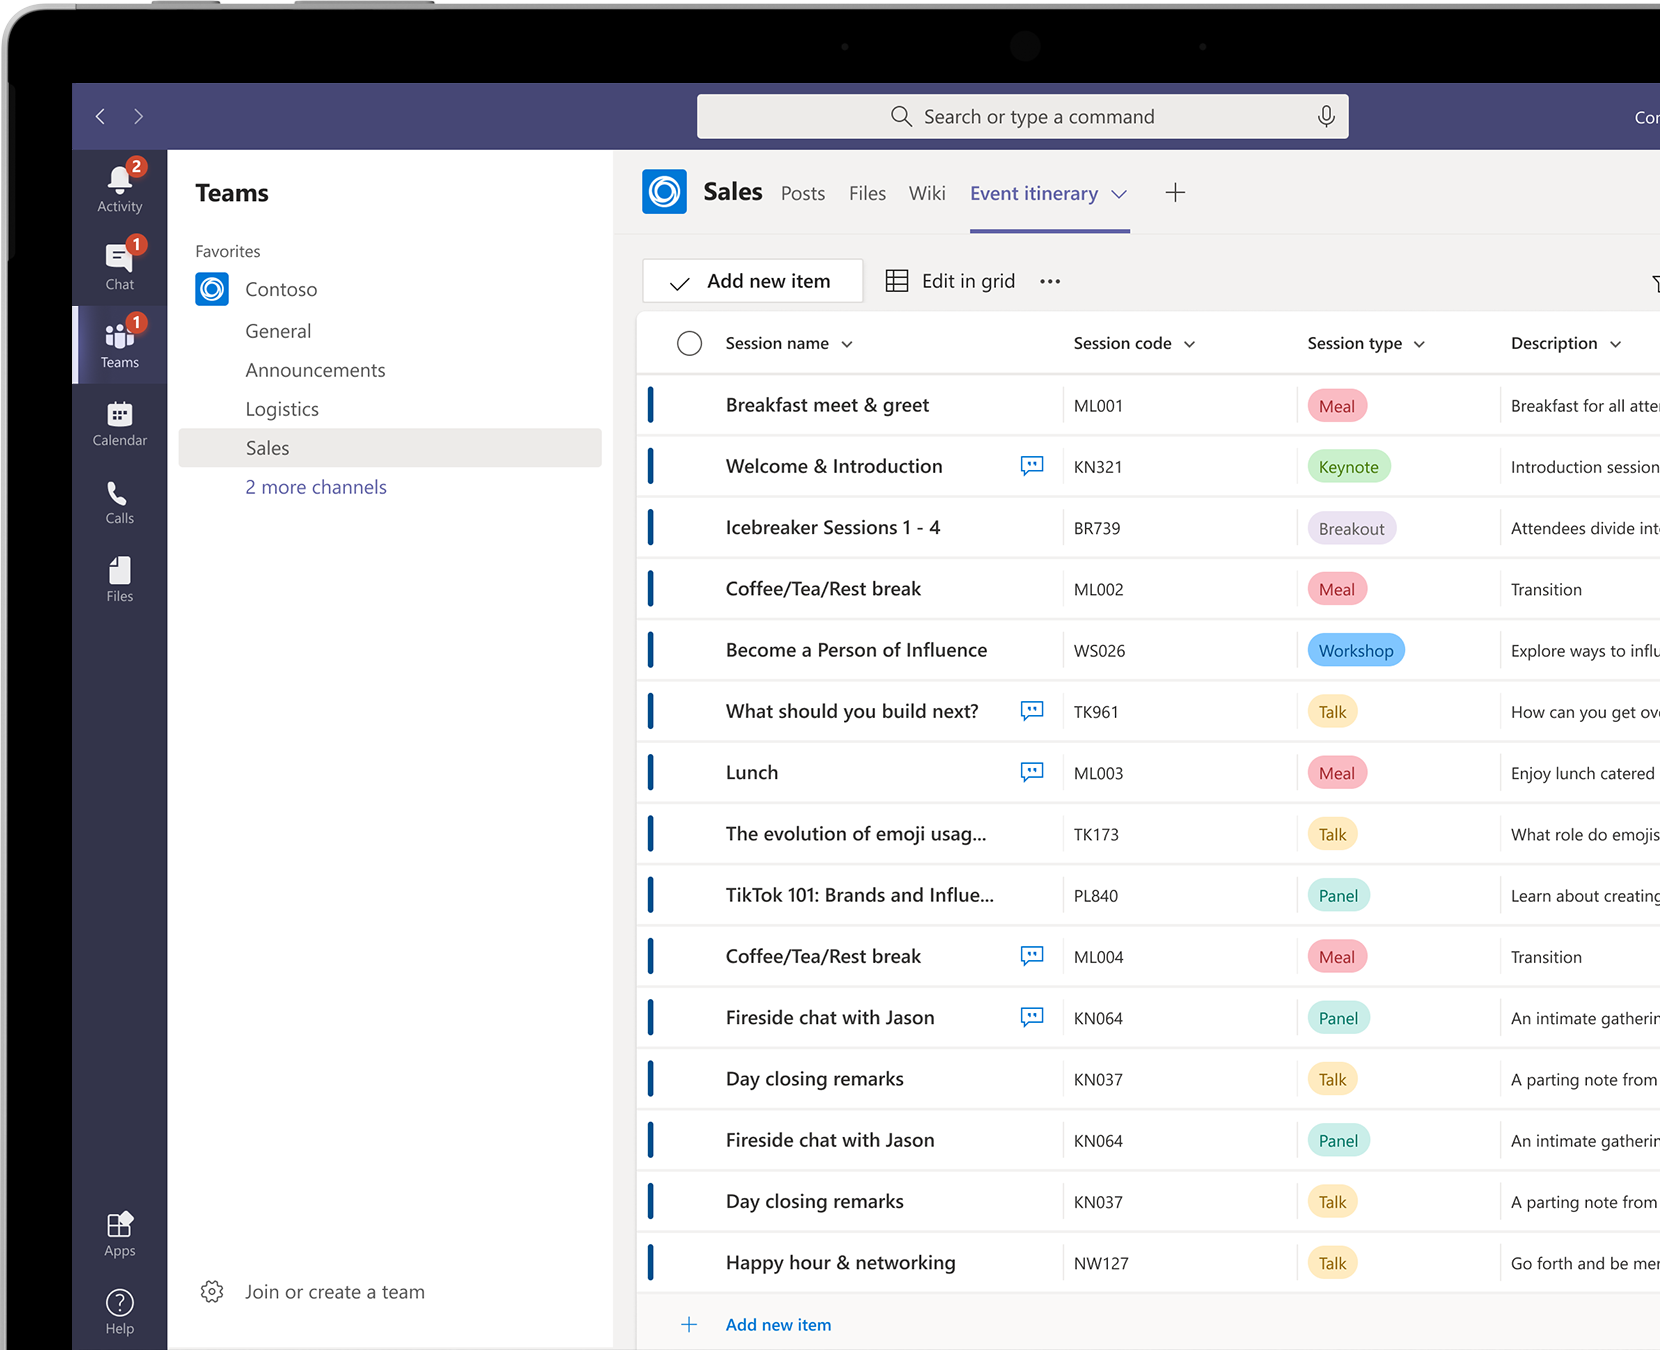 A list of sessions for an event, including details about each session, shown within Microsoft Teams.